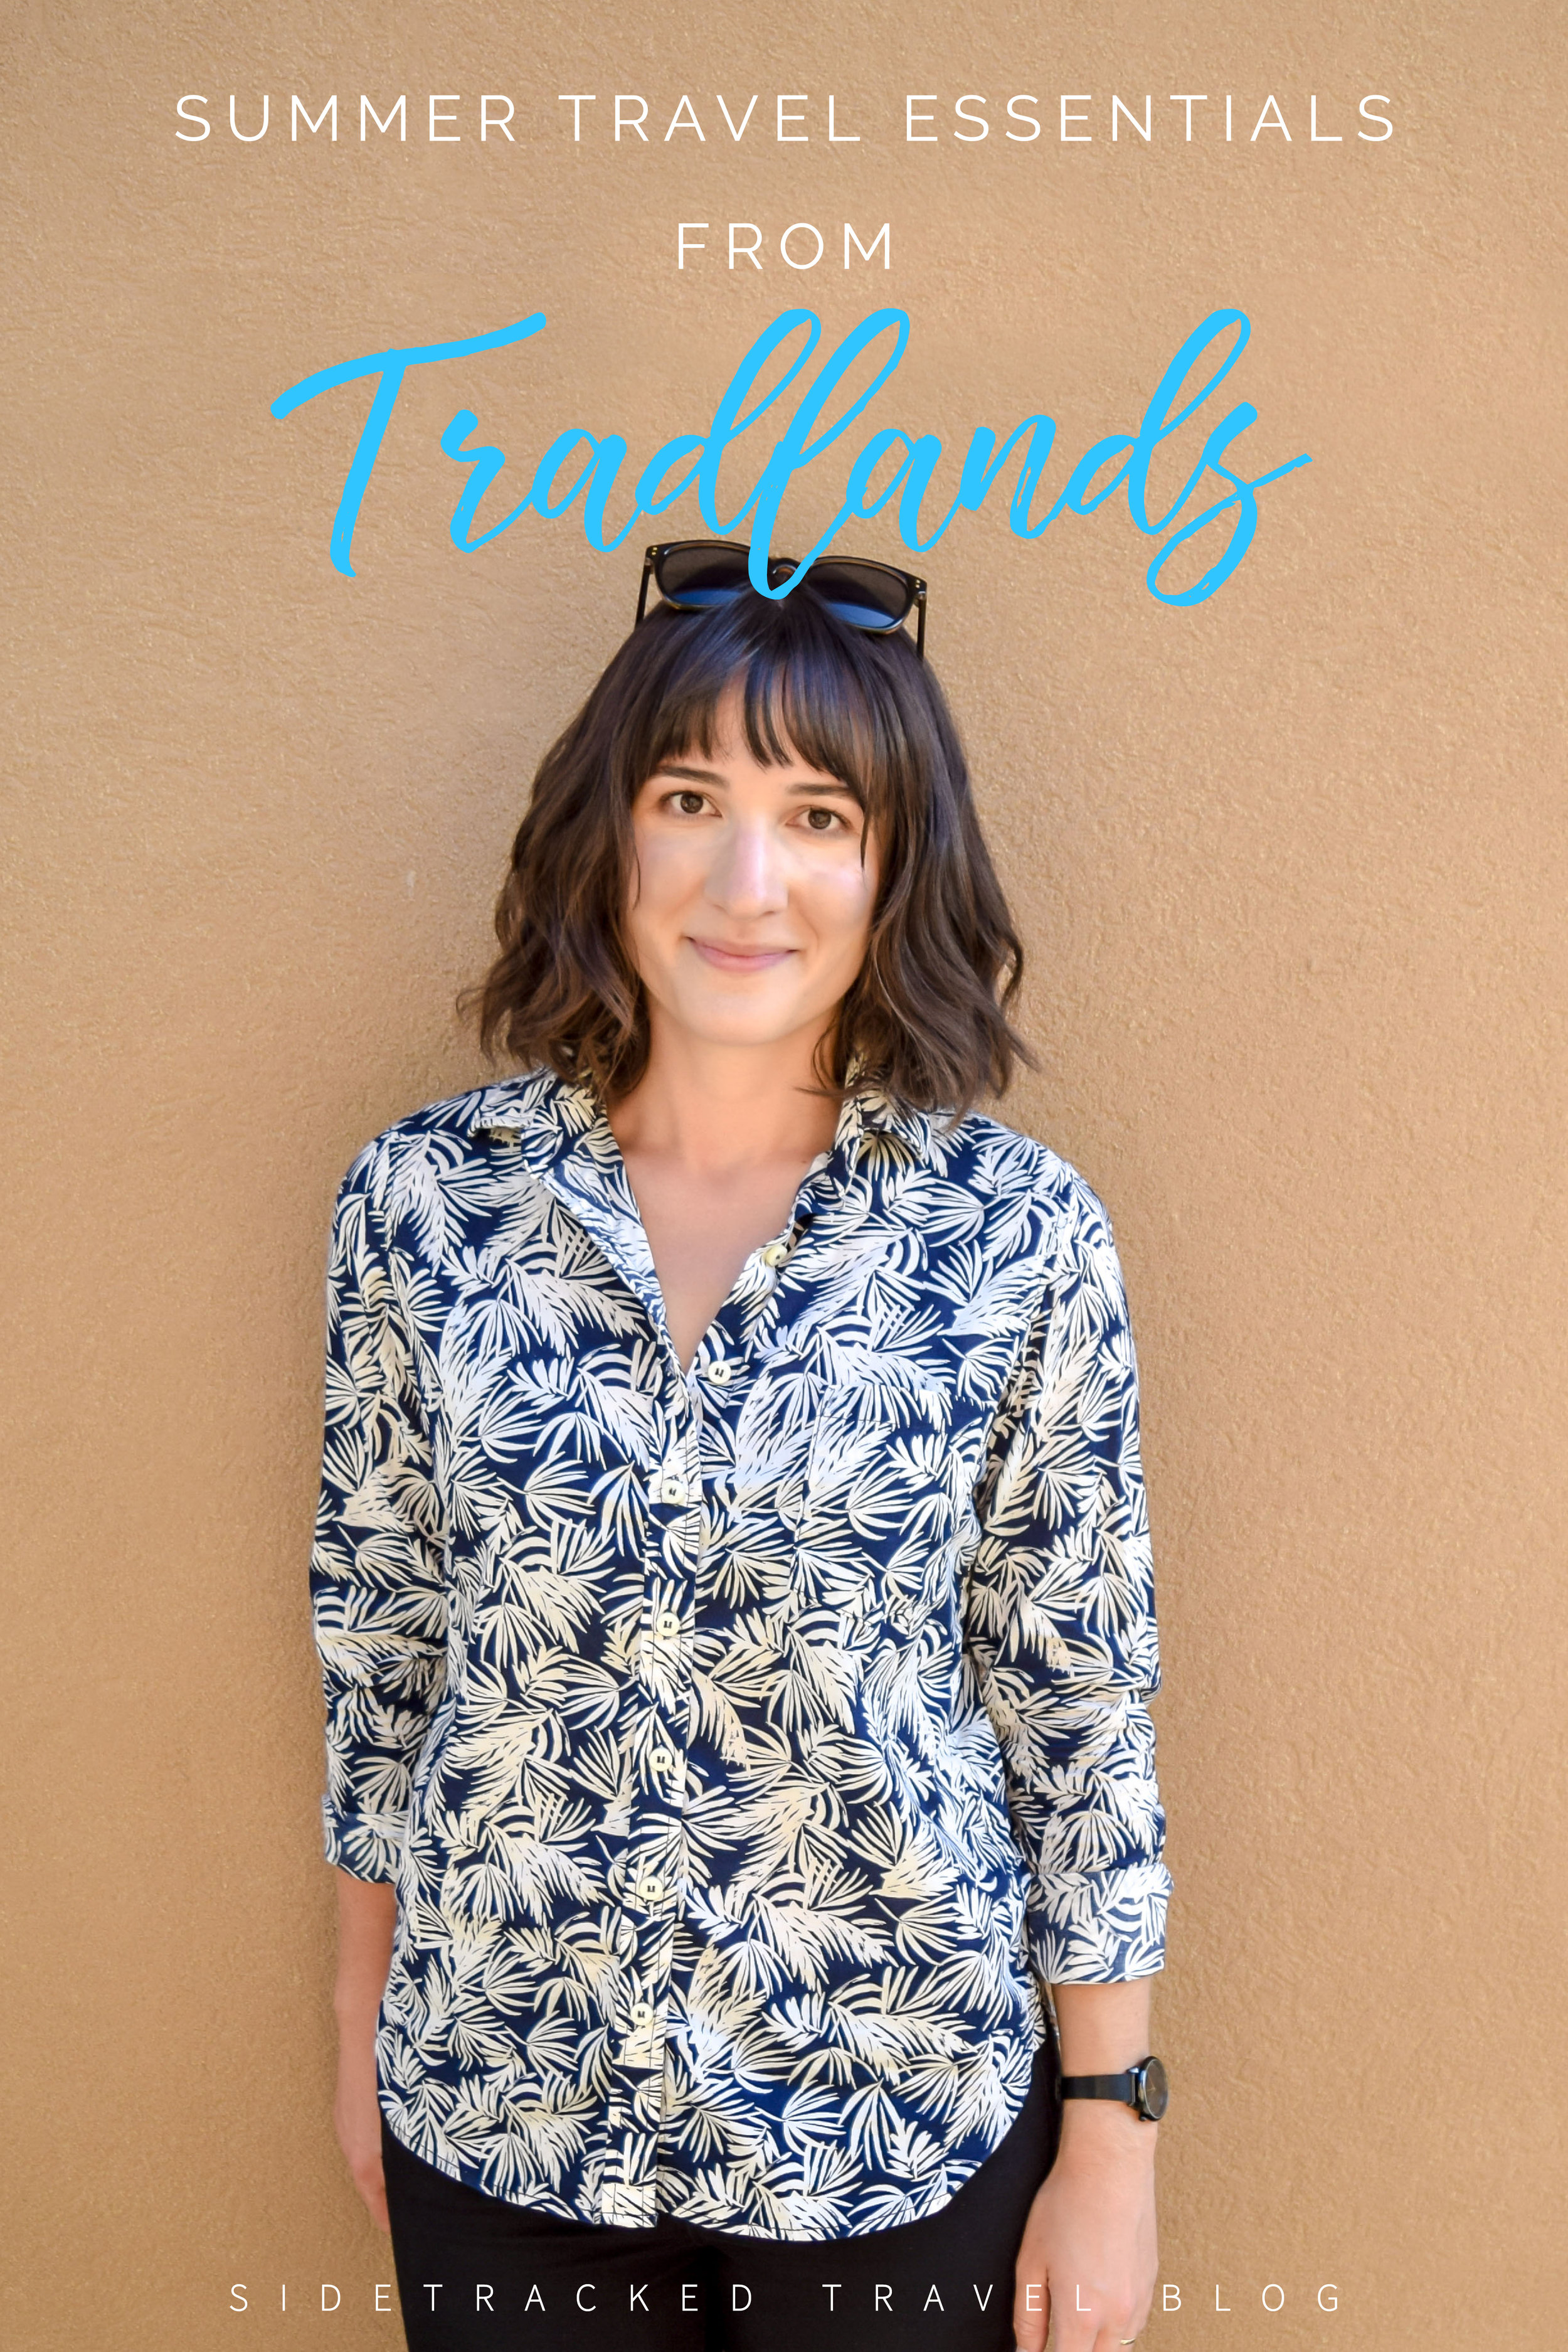 Looking for the perfect shirt to take with you on your travels this summer? Then you should definitely consider Tradlands, a Made-in-the-USA company that ethically produces gorgeous women's clothing. Here's a review of some pieces from their new summer collection.